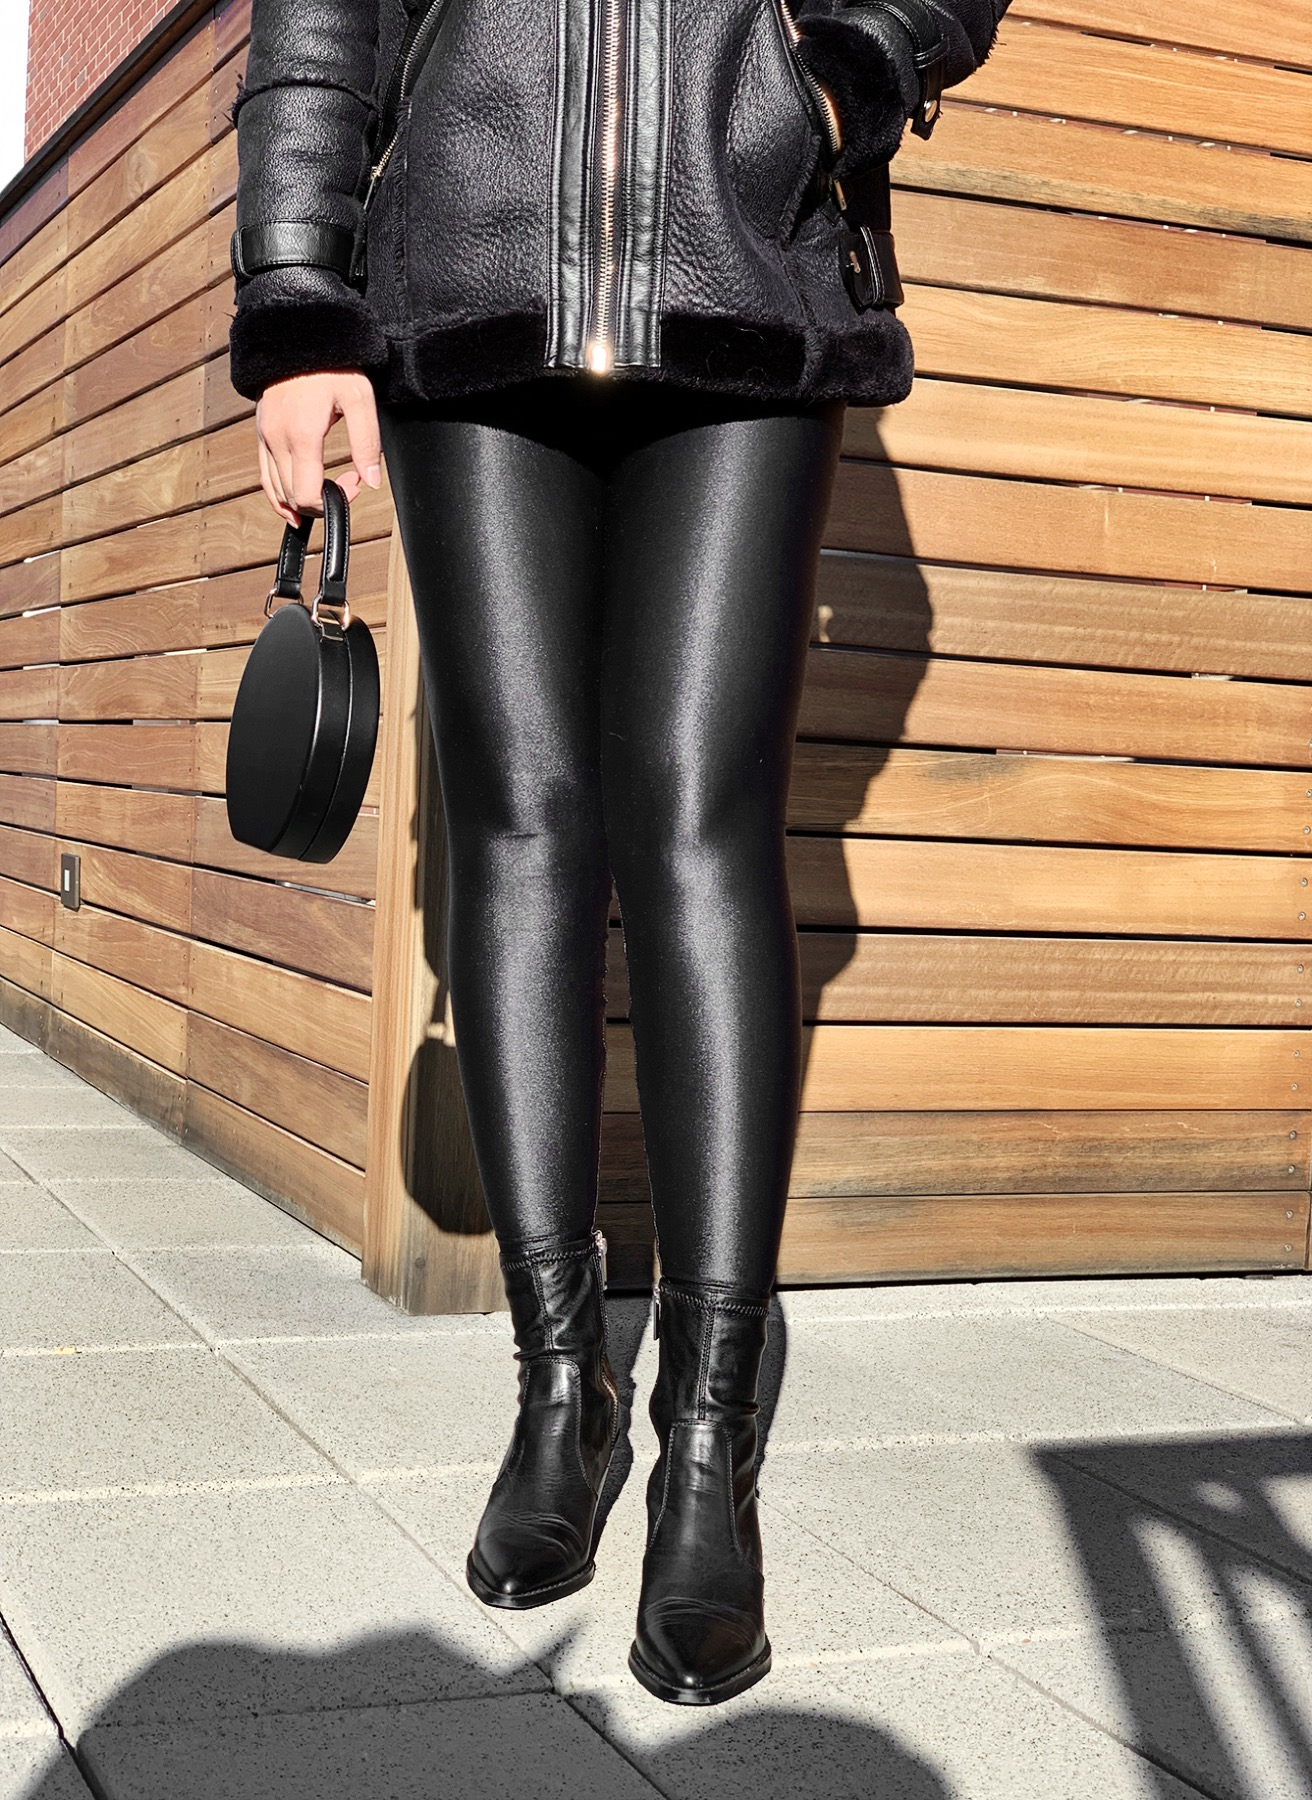 Best Stylish Winter Boots - western cowboy boots